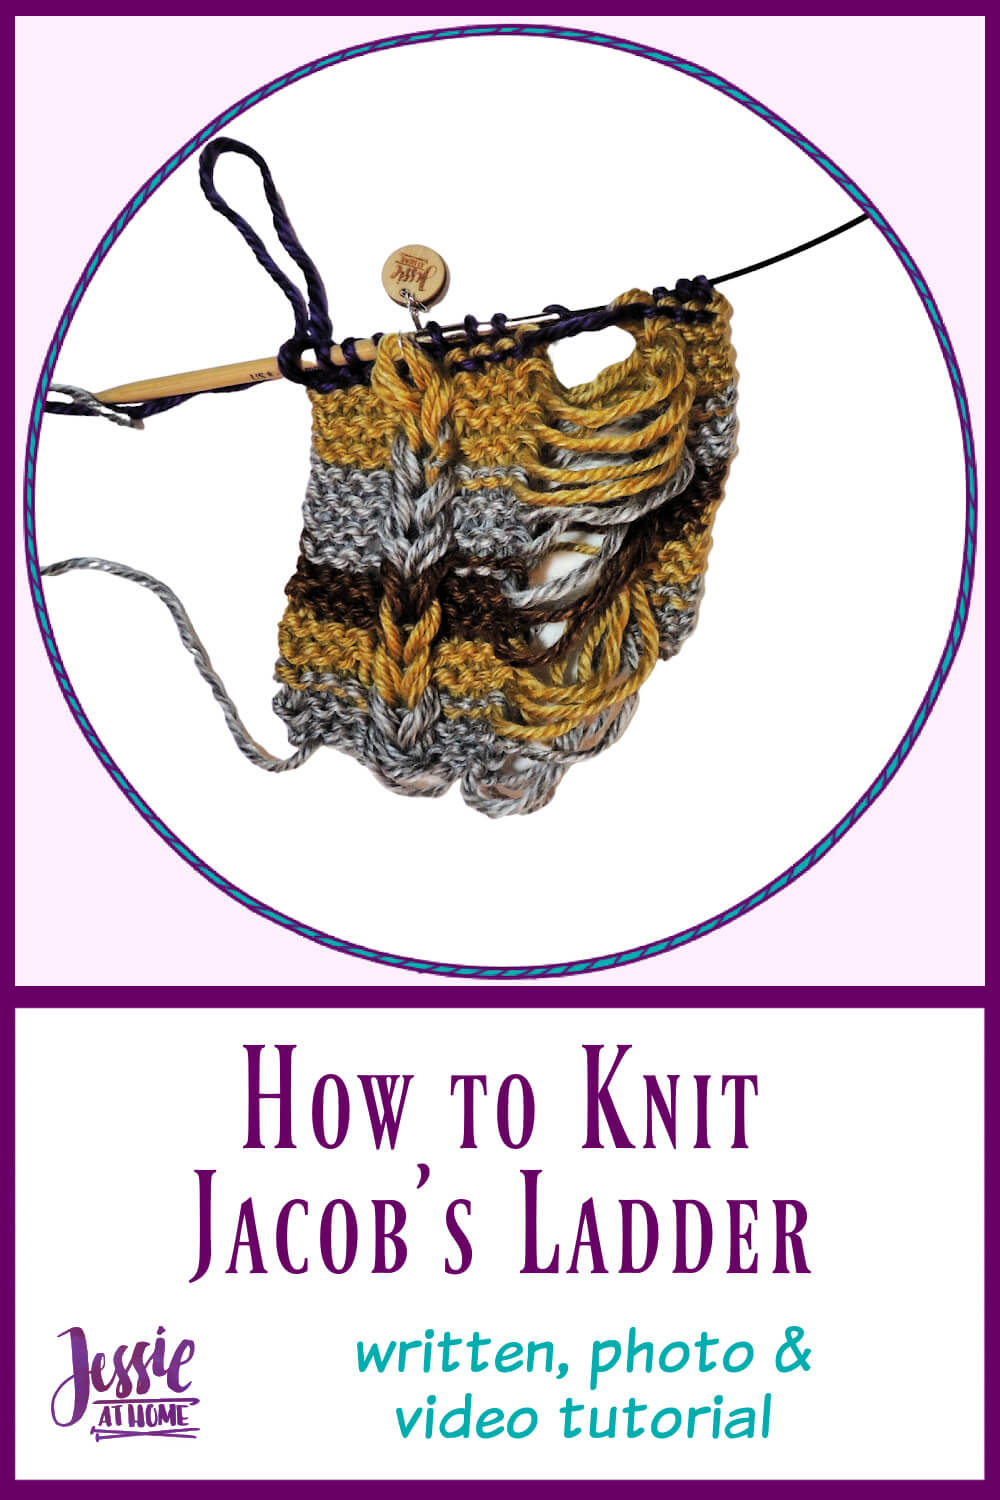 Knit Jacob\'s Ladder - written, photo & video tutorial